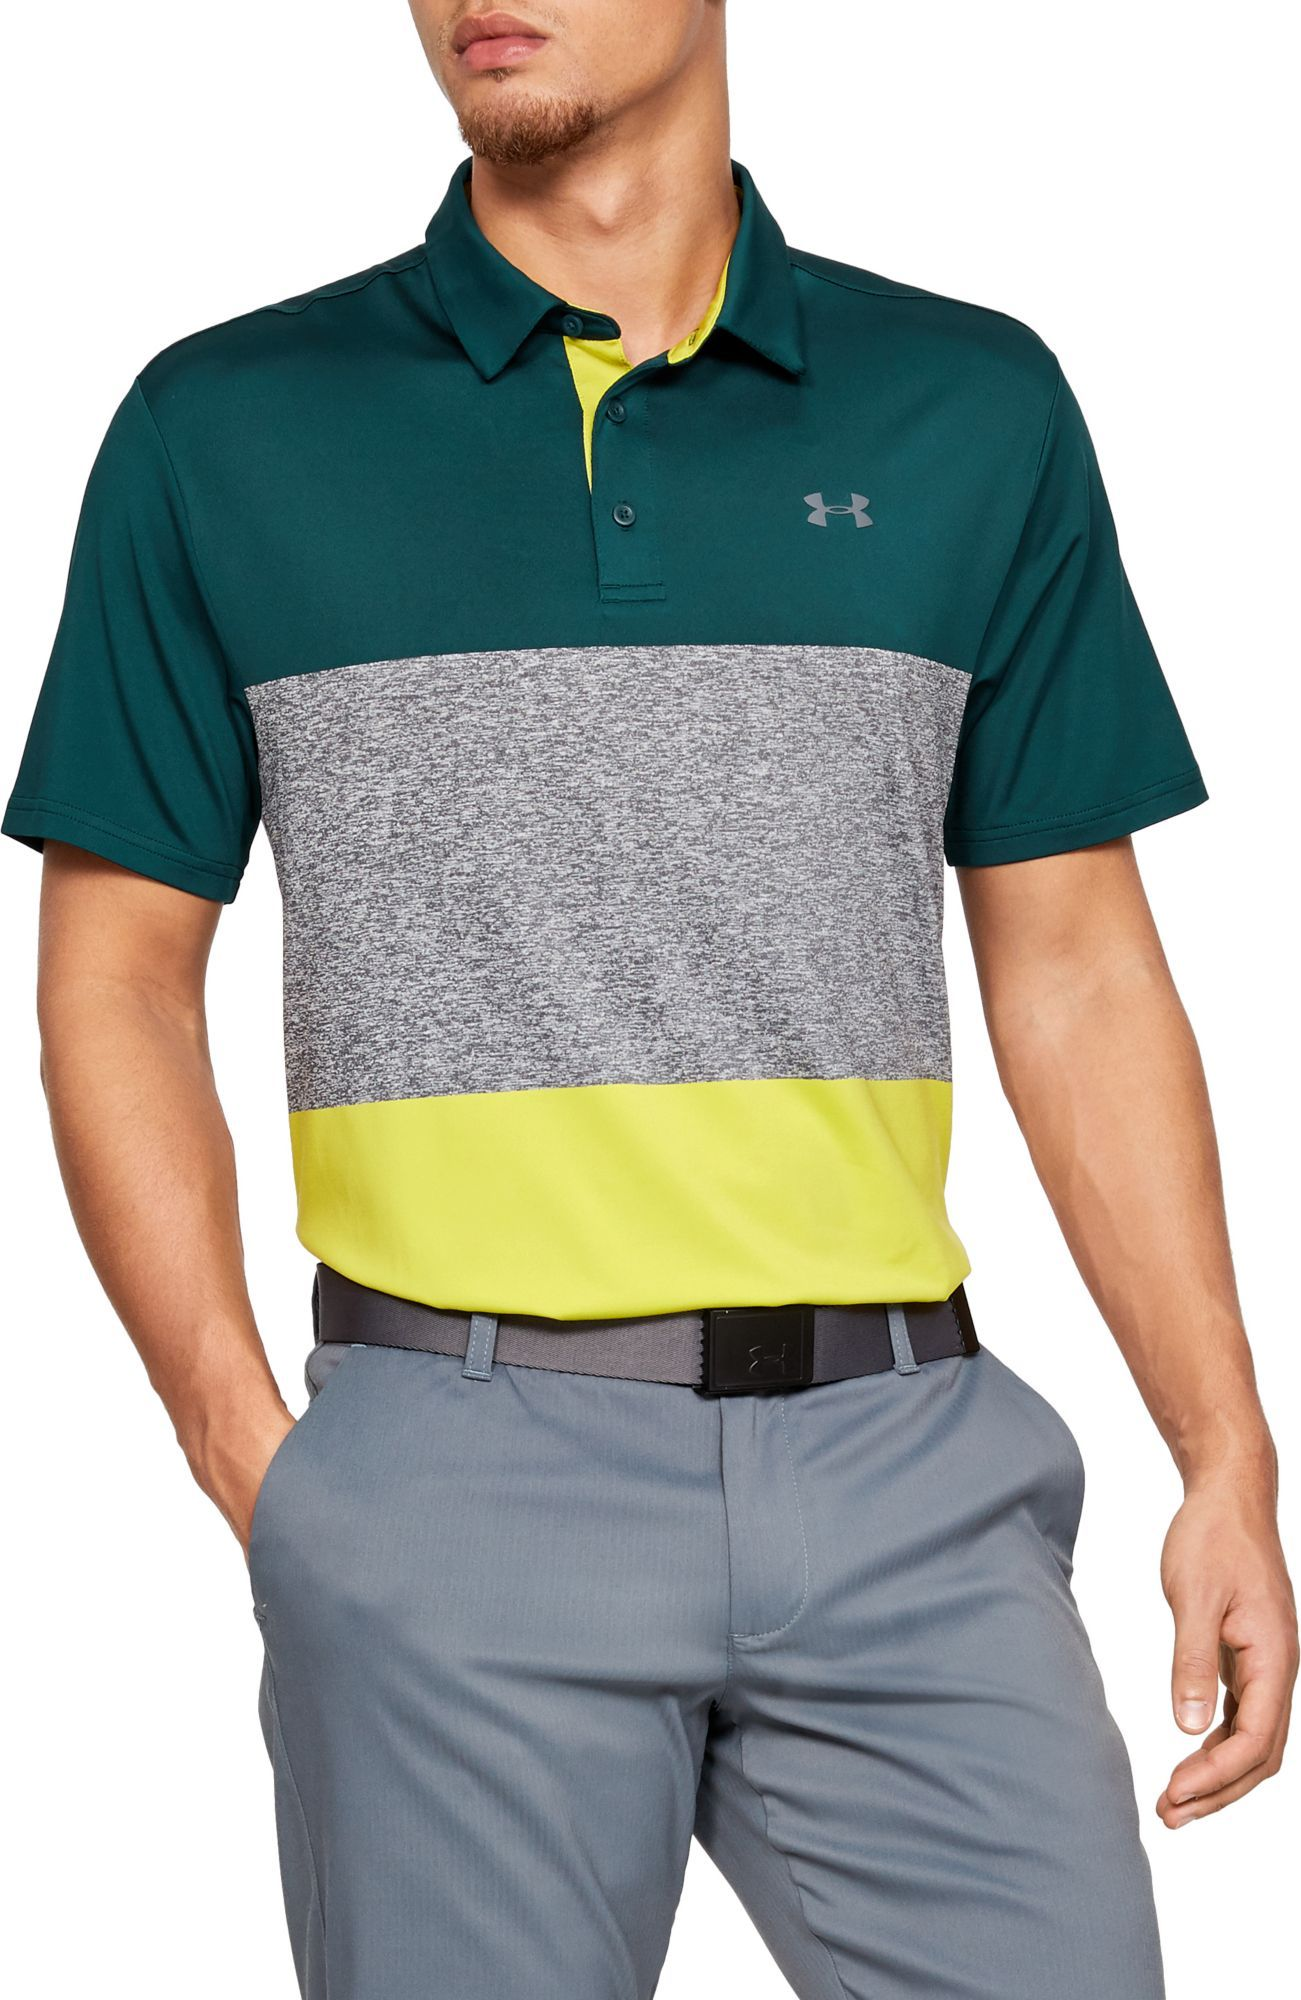 7effc671 Under Armour Men's Playoff 2.0 Heritage Golf Polo in 2019 | Products ...